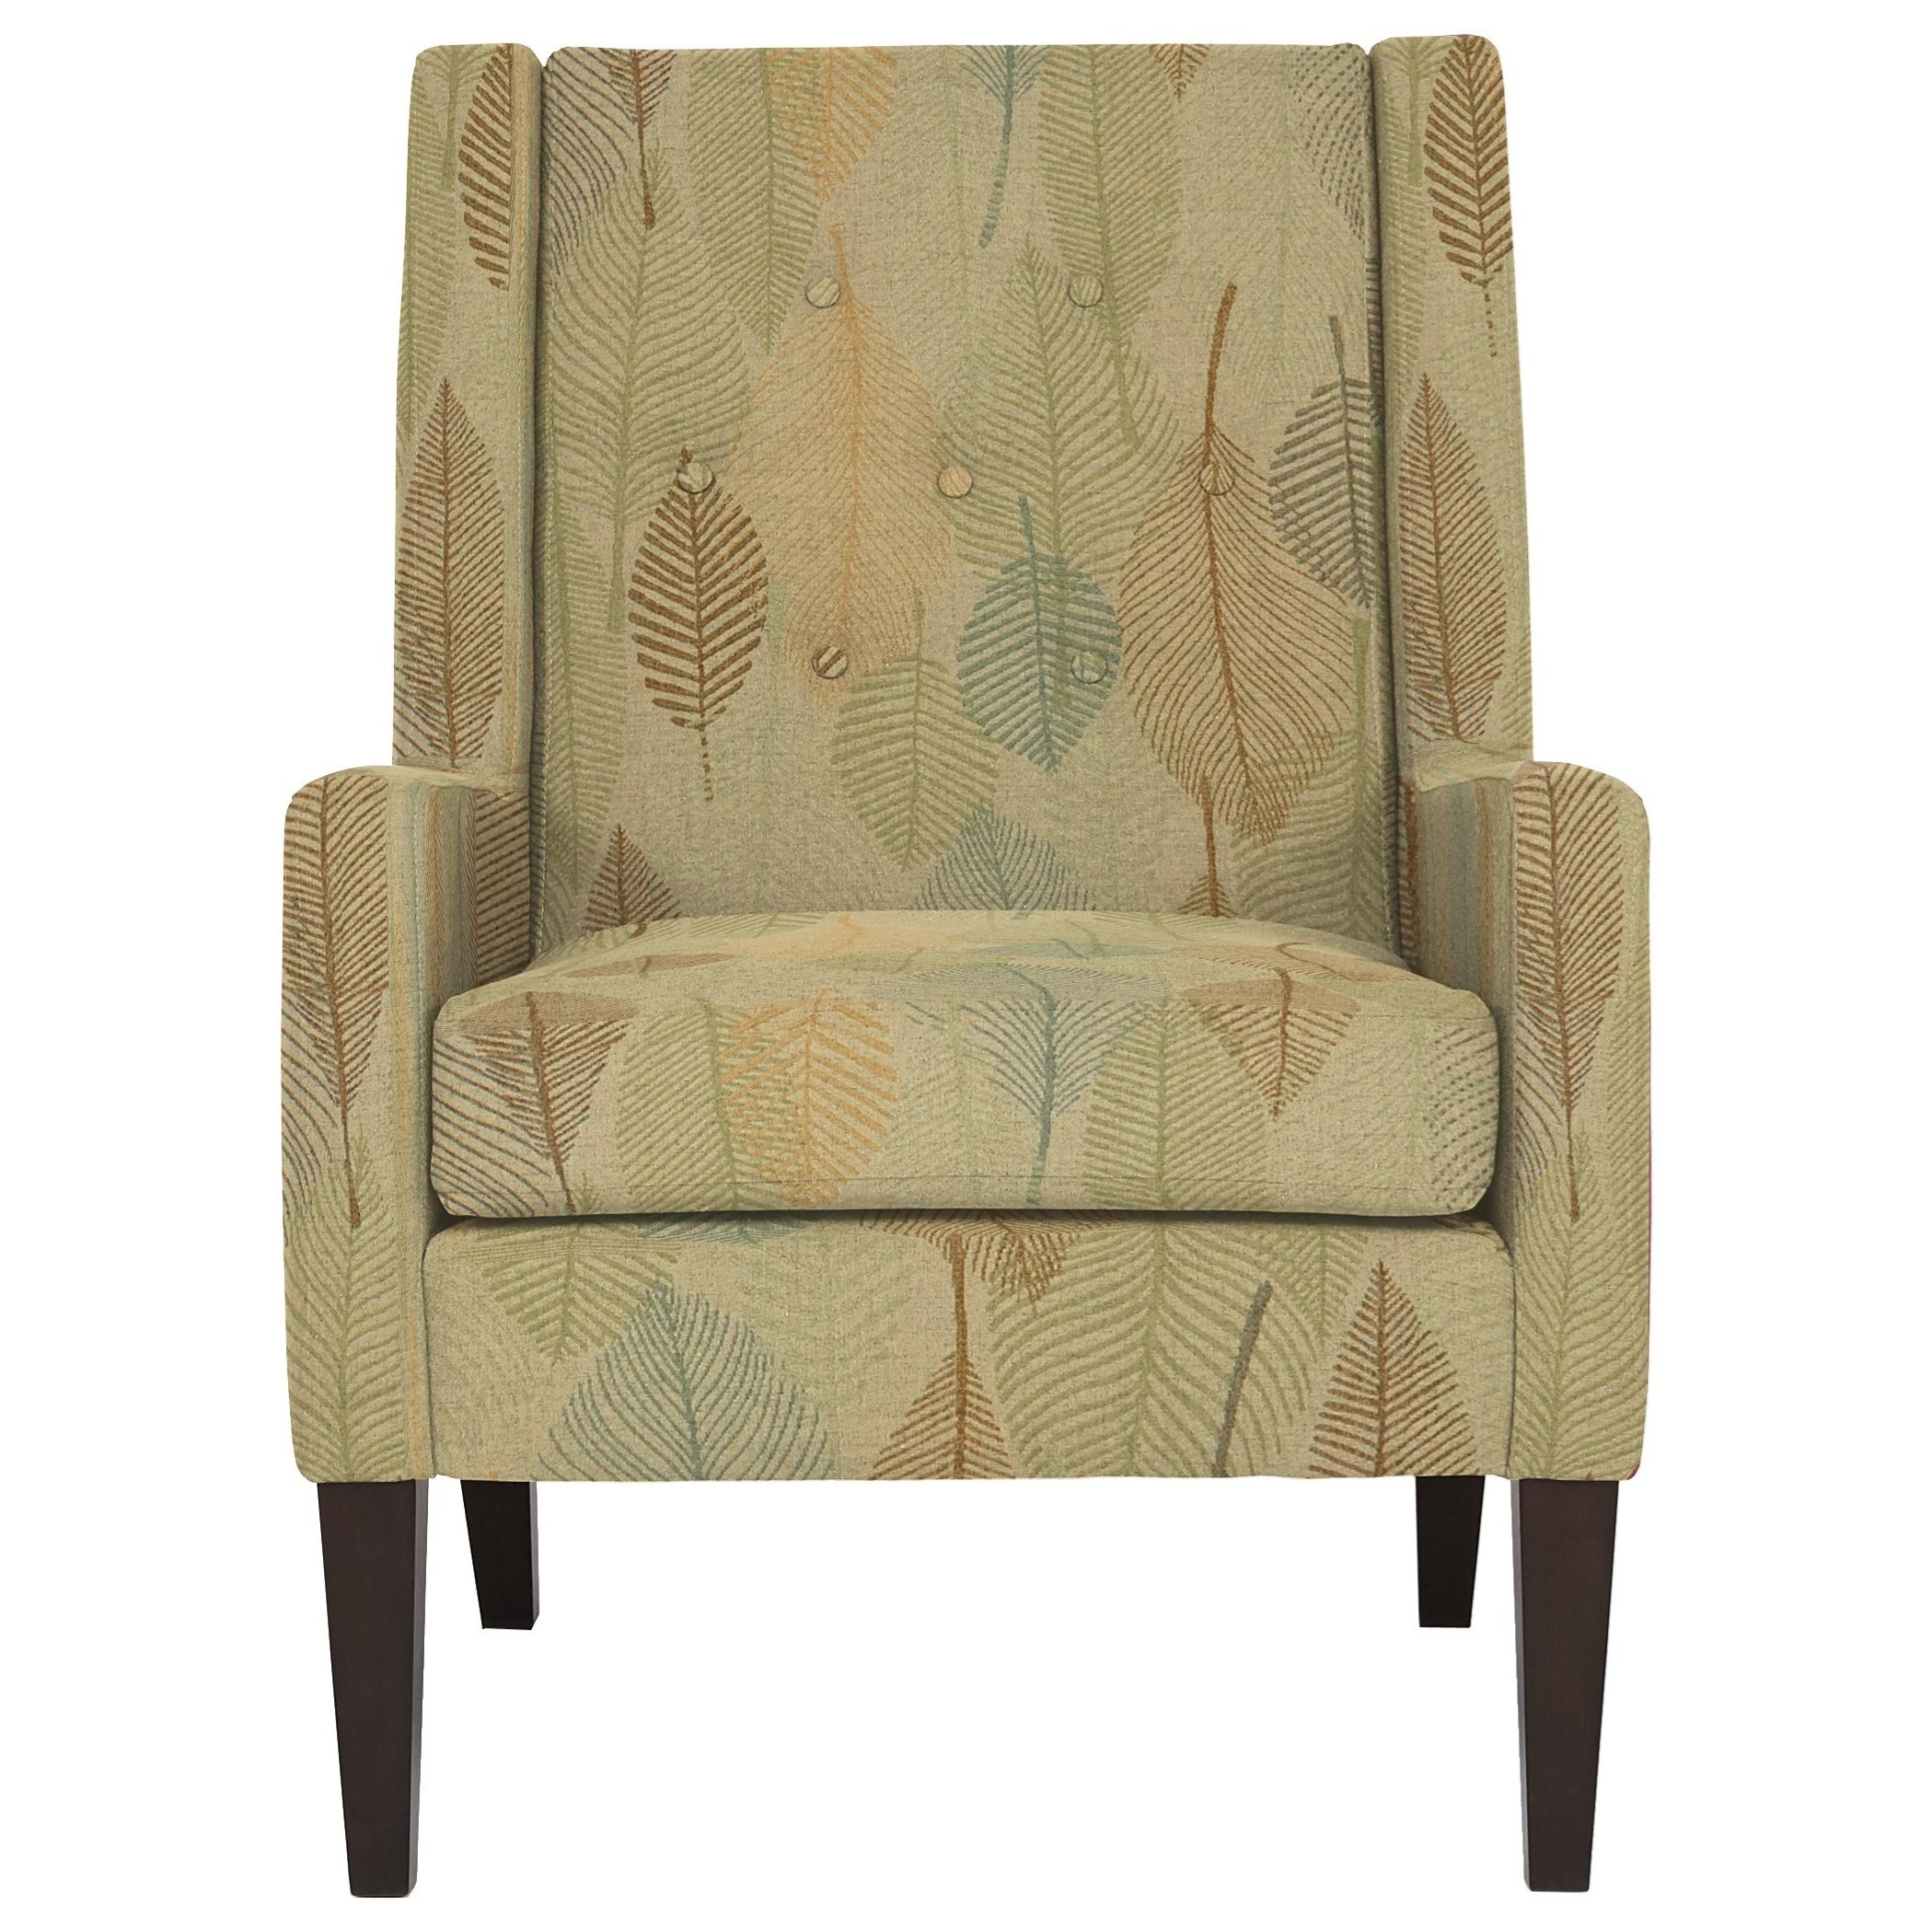 Best Home Furnishings Chairs - Accent Chair - Item Number: 2510E-34911